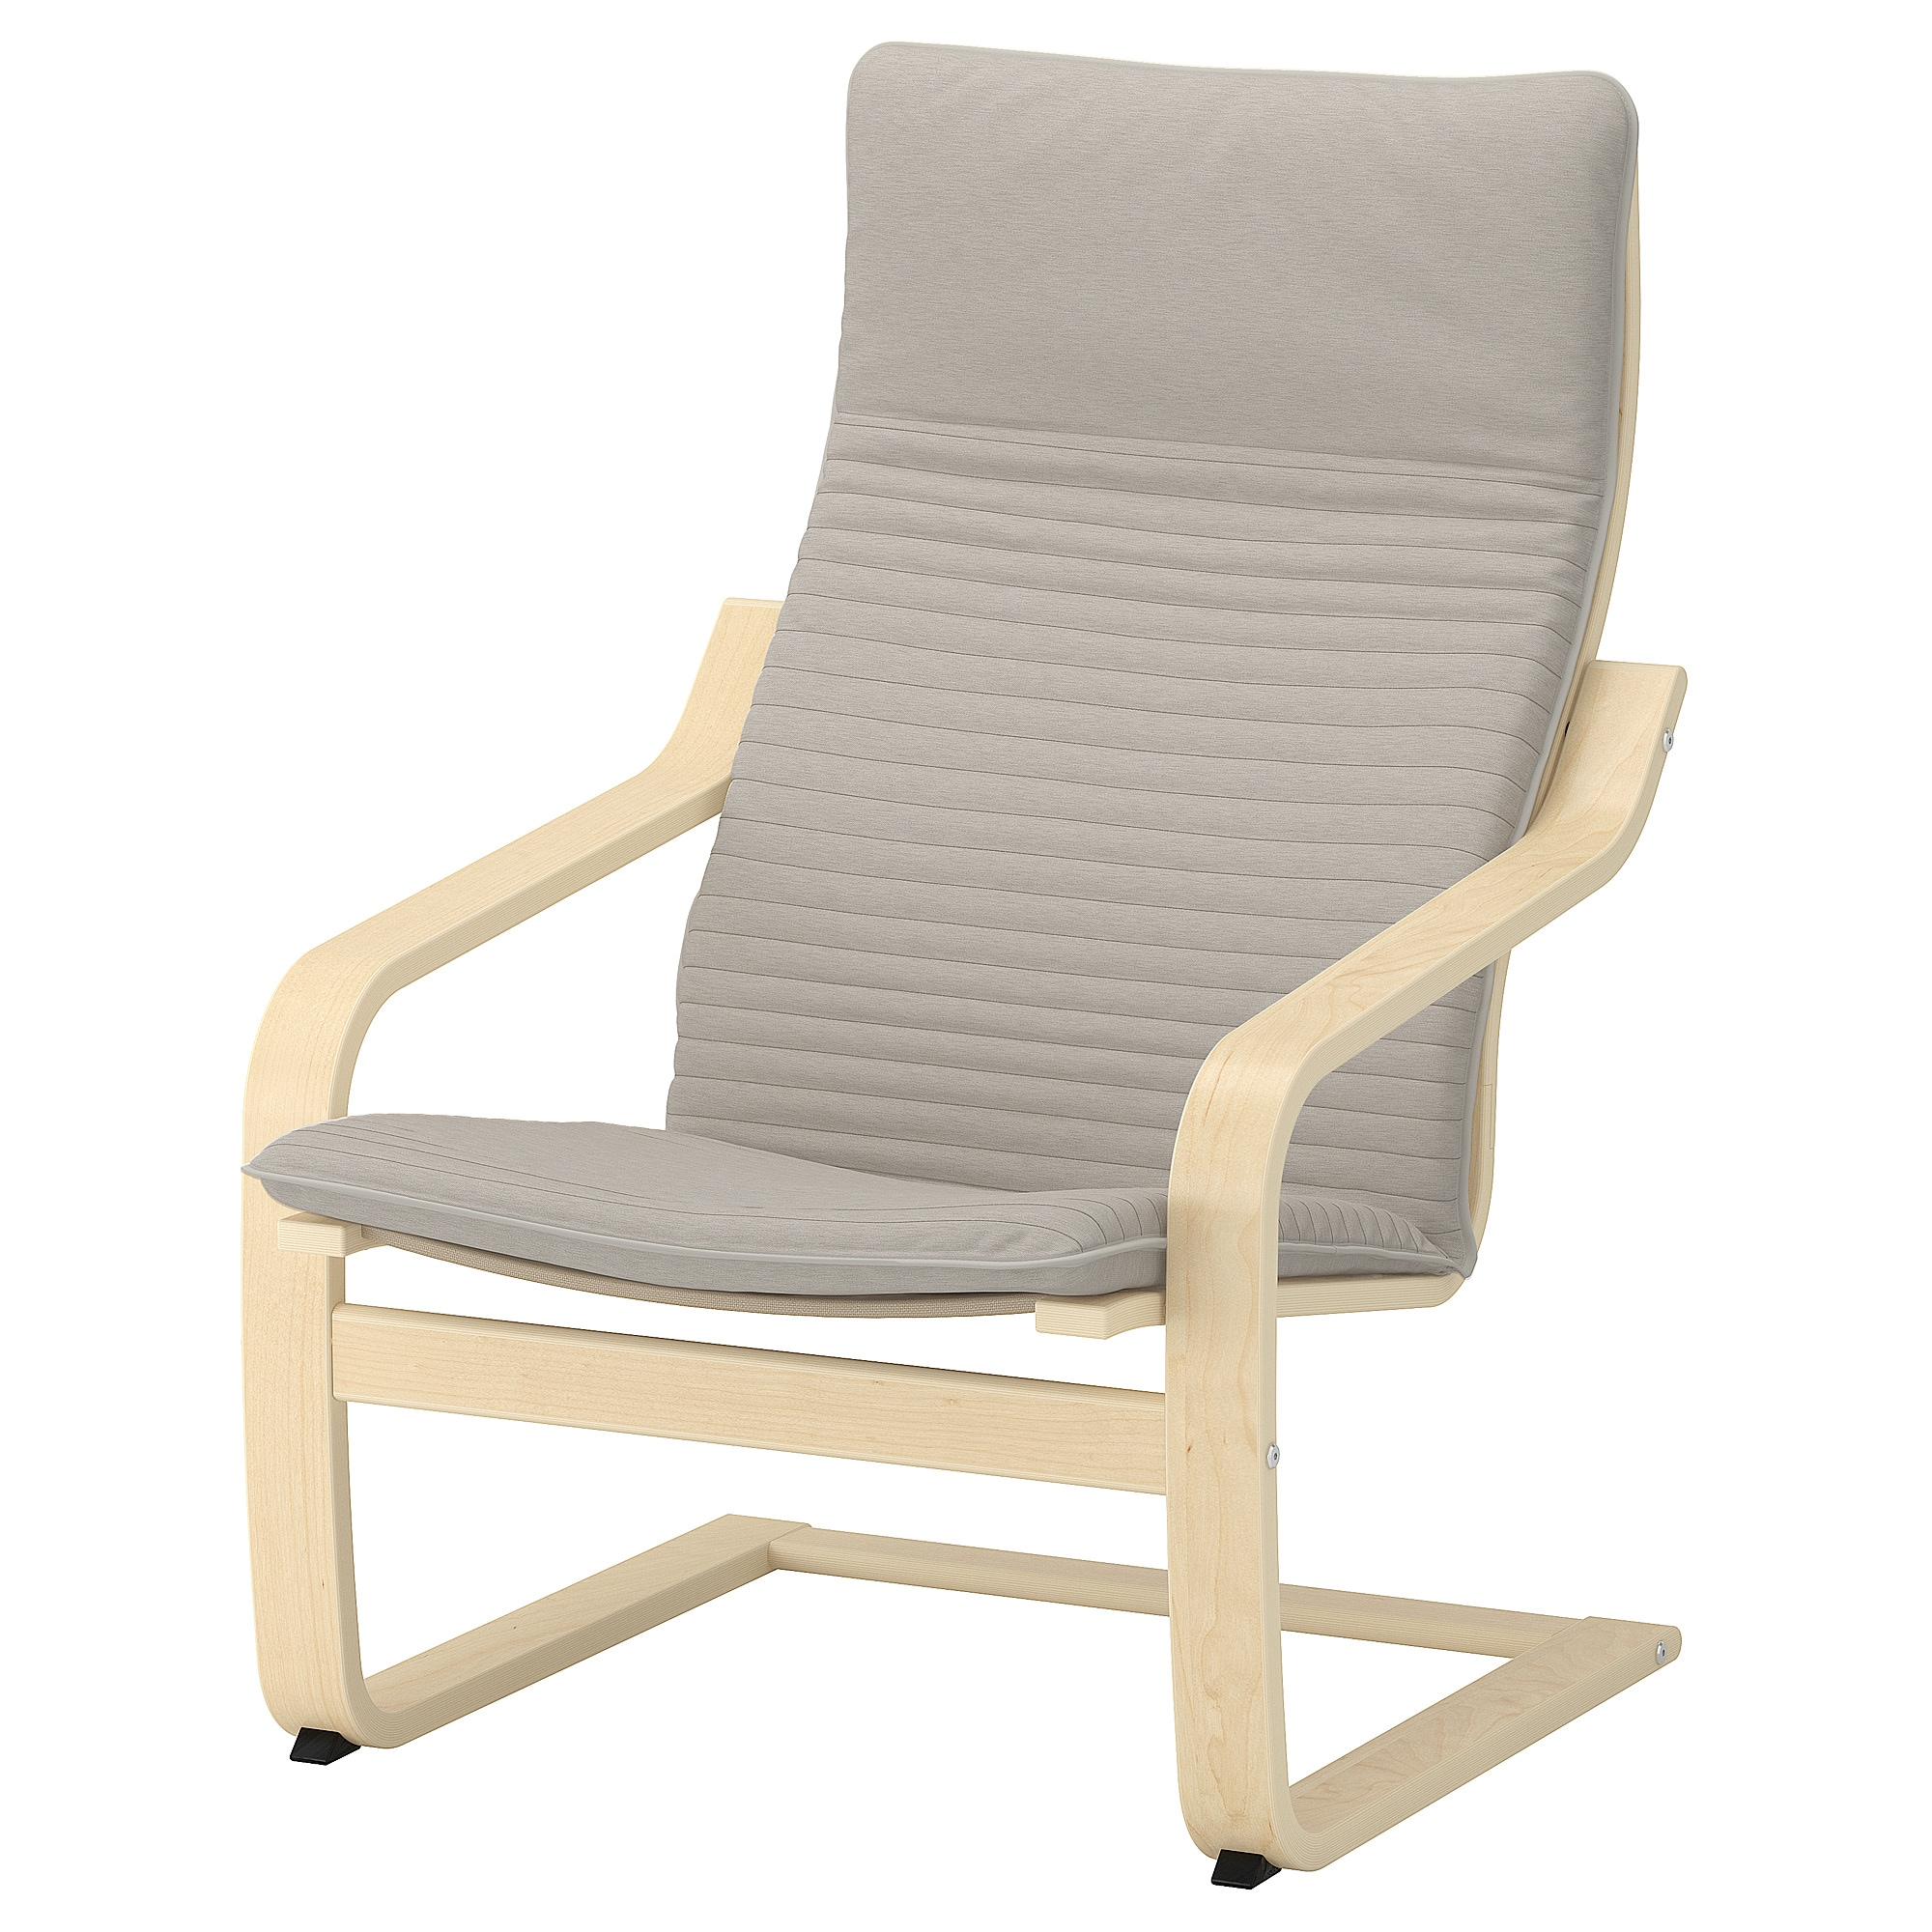 Armchair POÄNG birch veneer, Knisa light beige